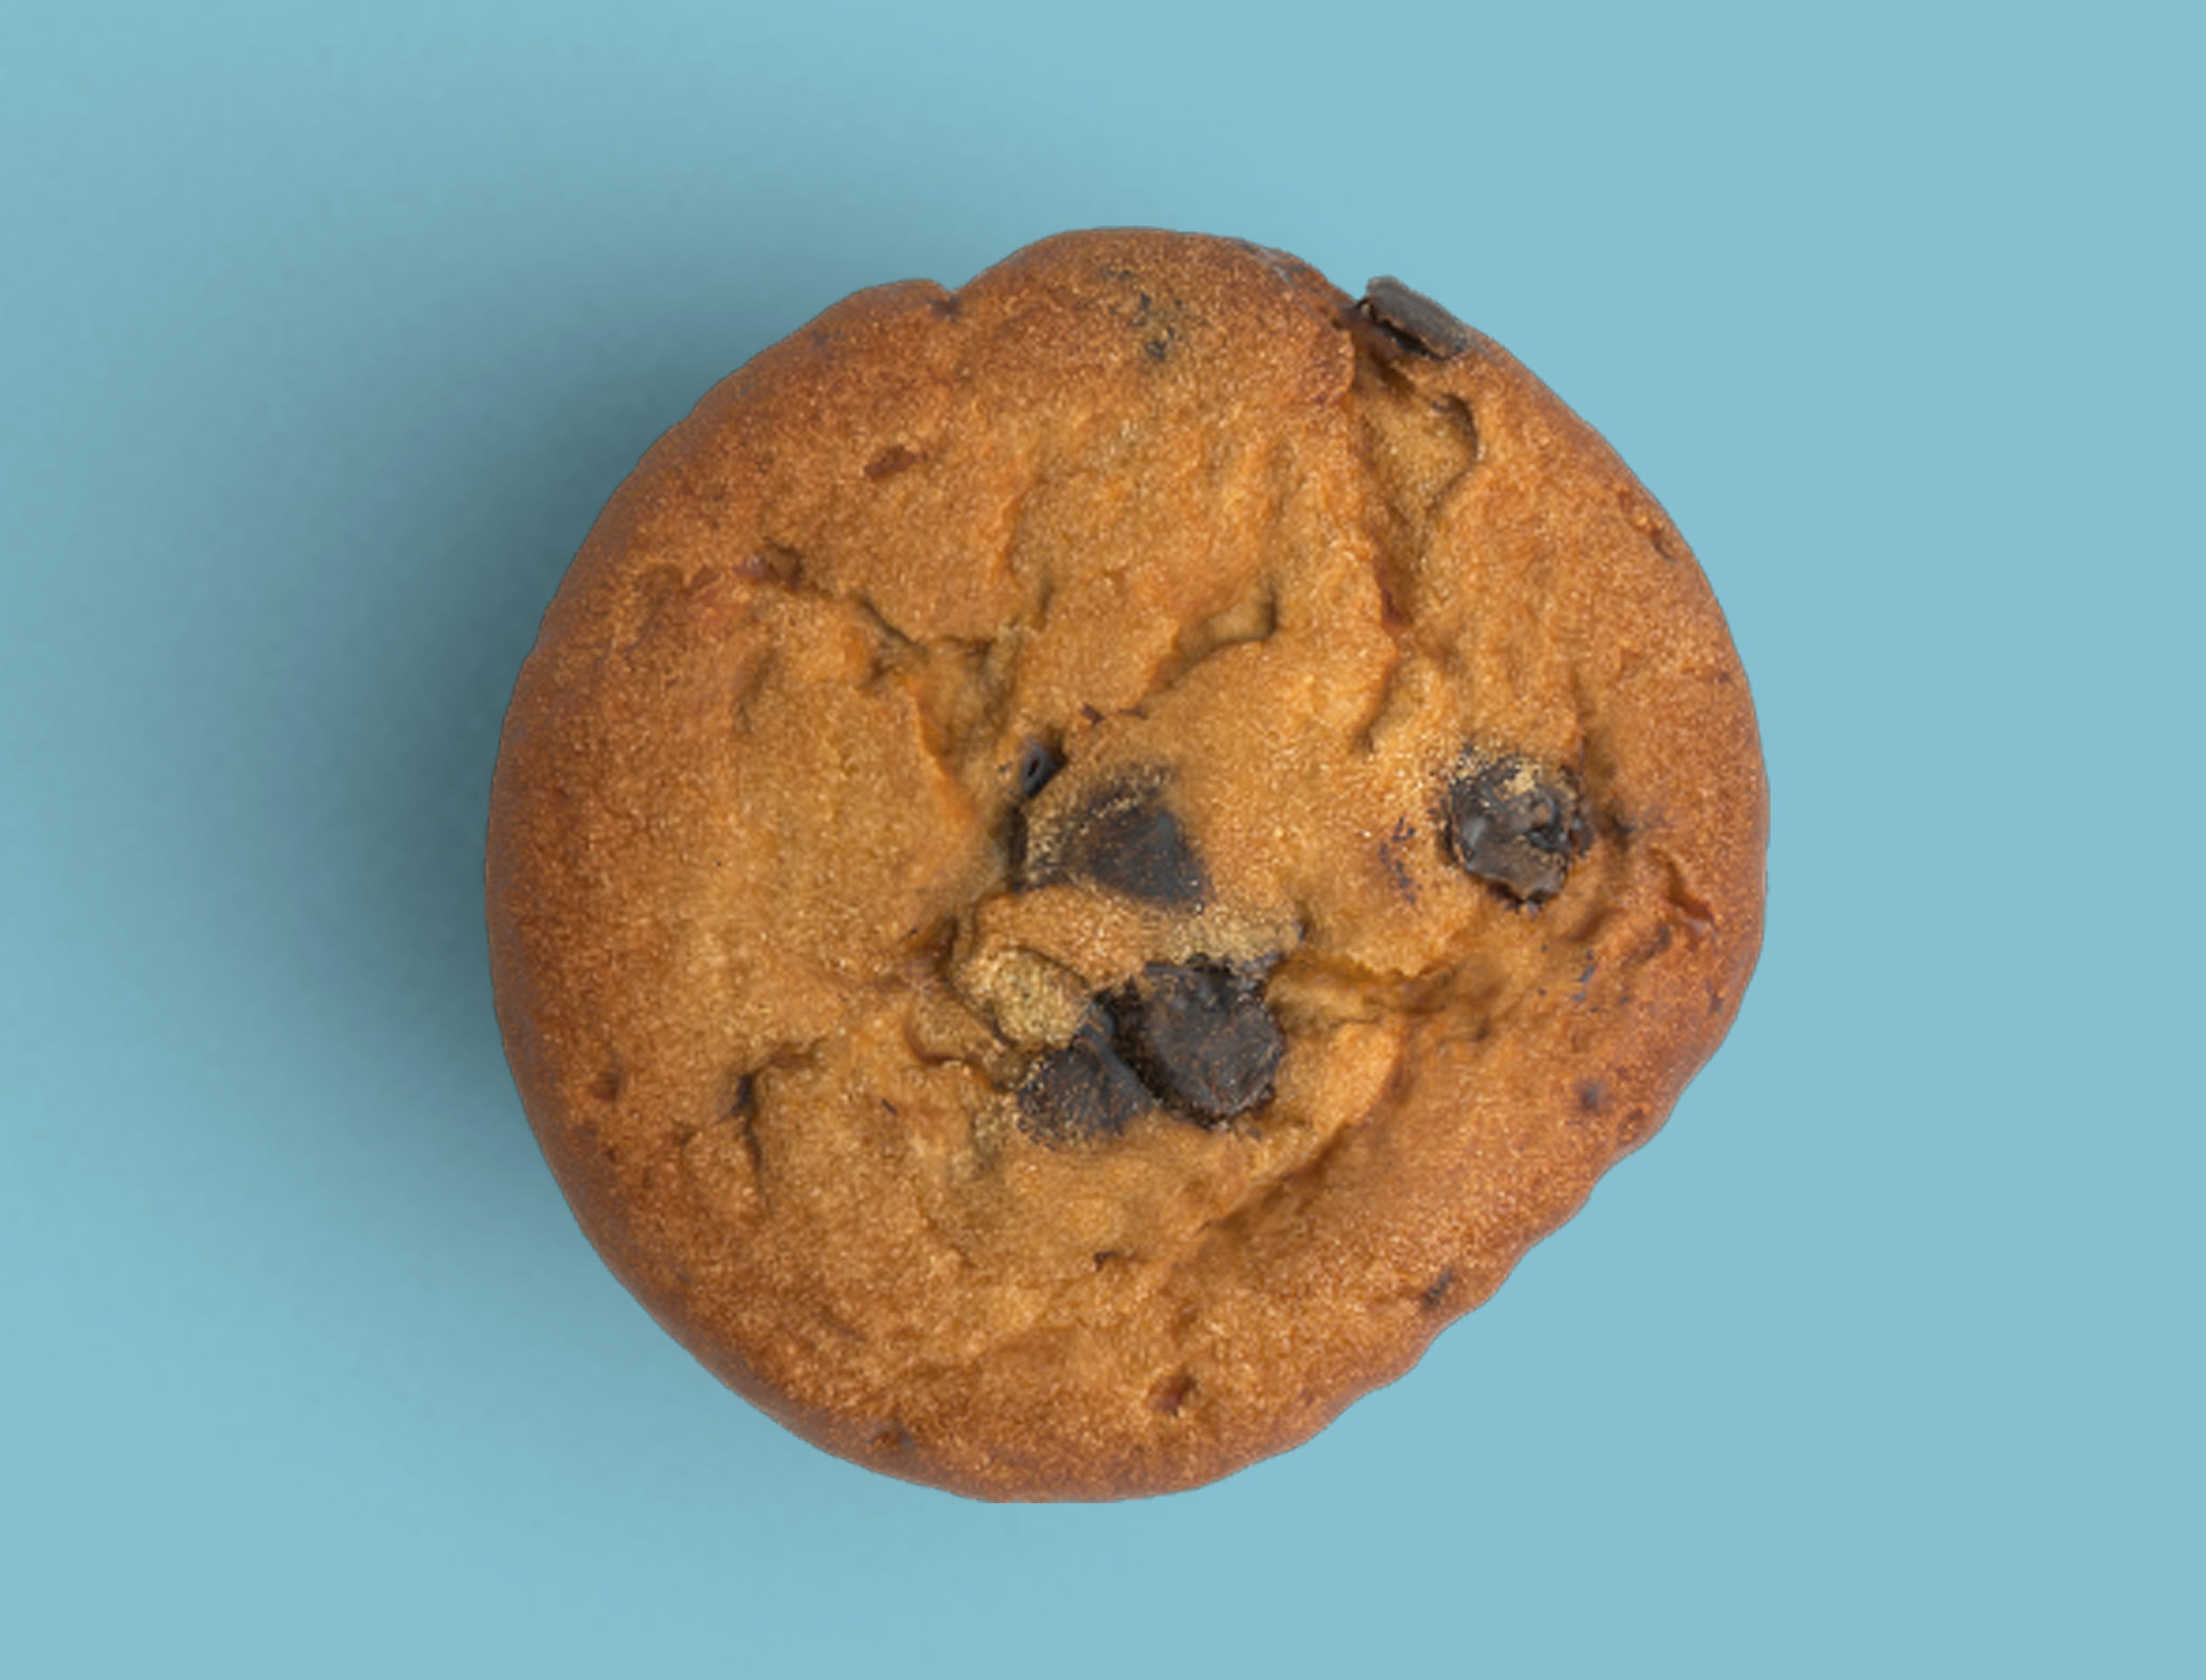 Free stock photo of background, blue, blue background, cookie